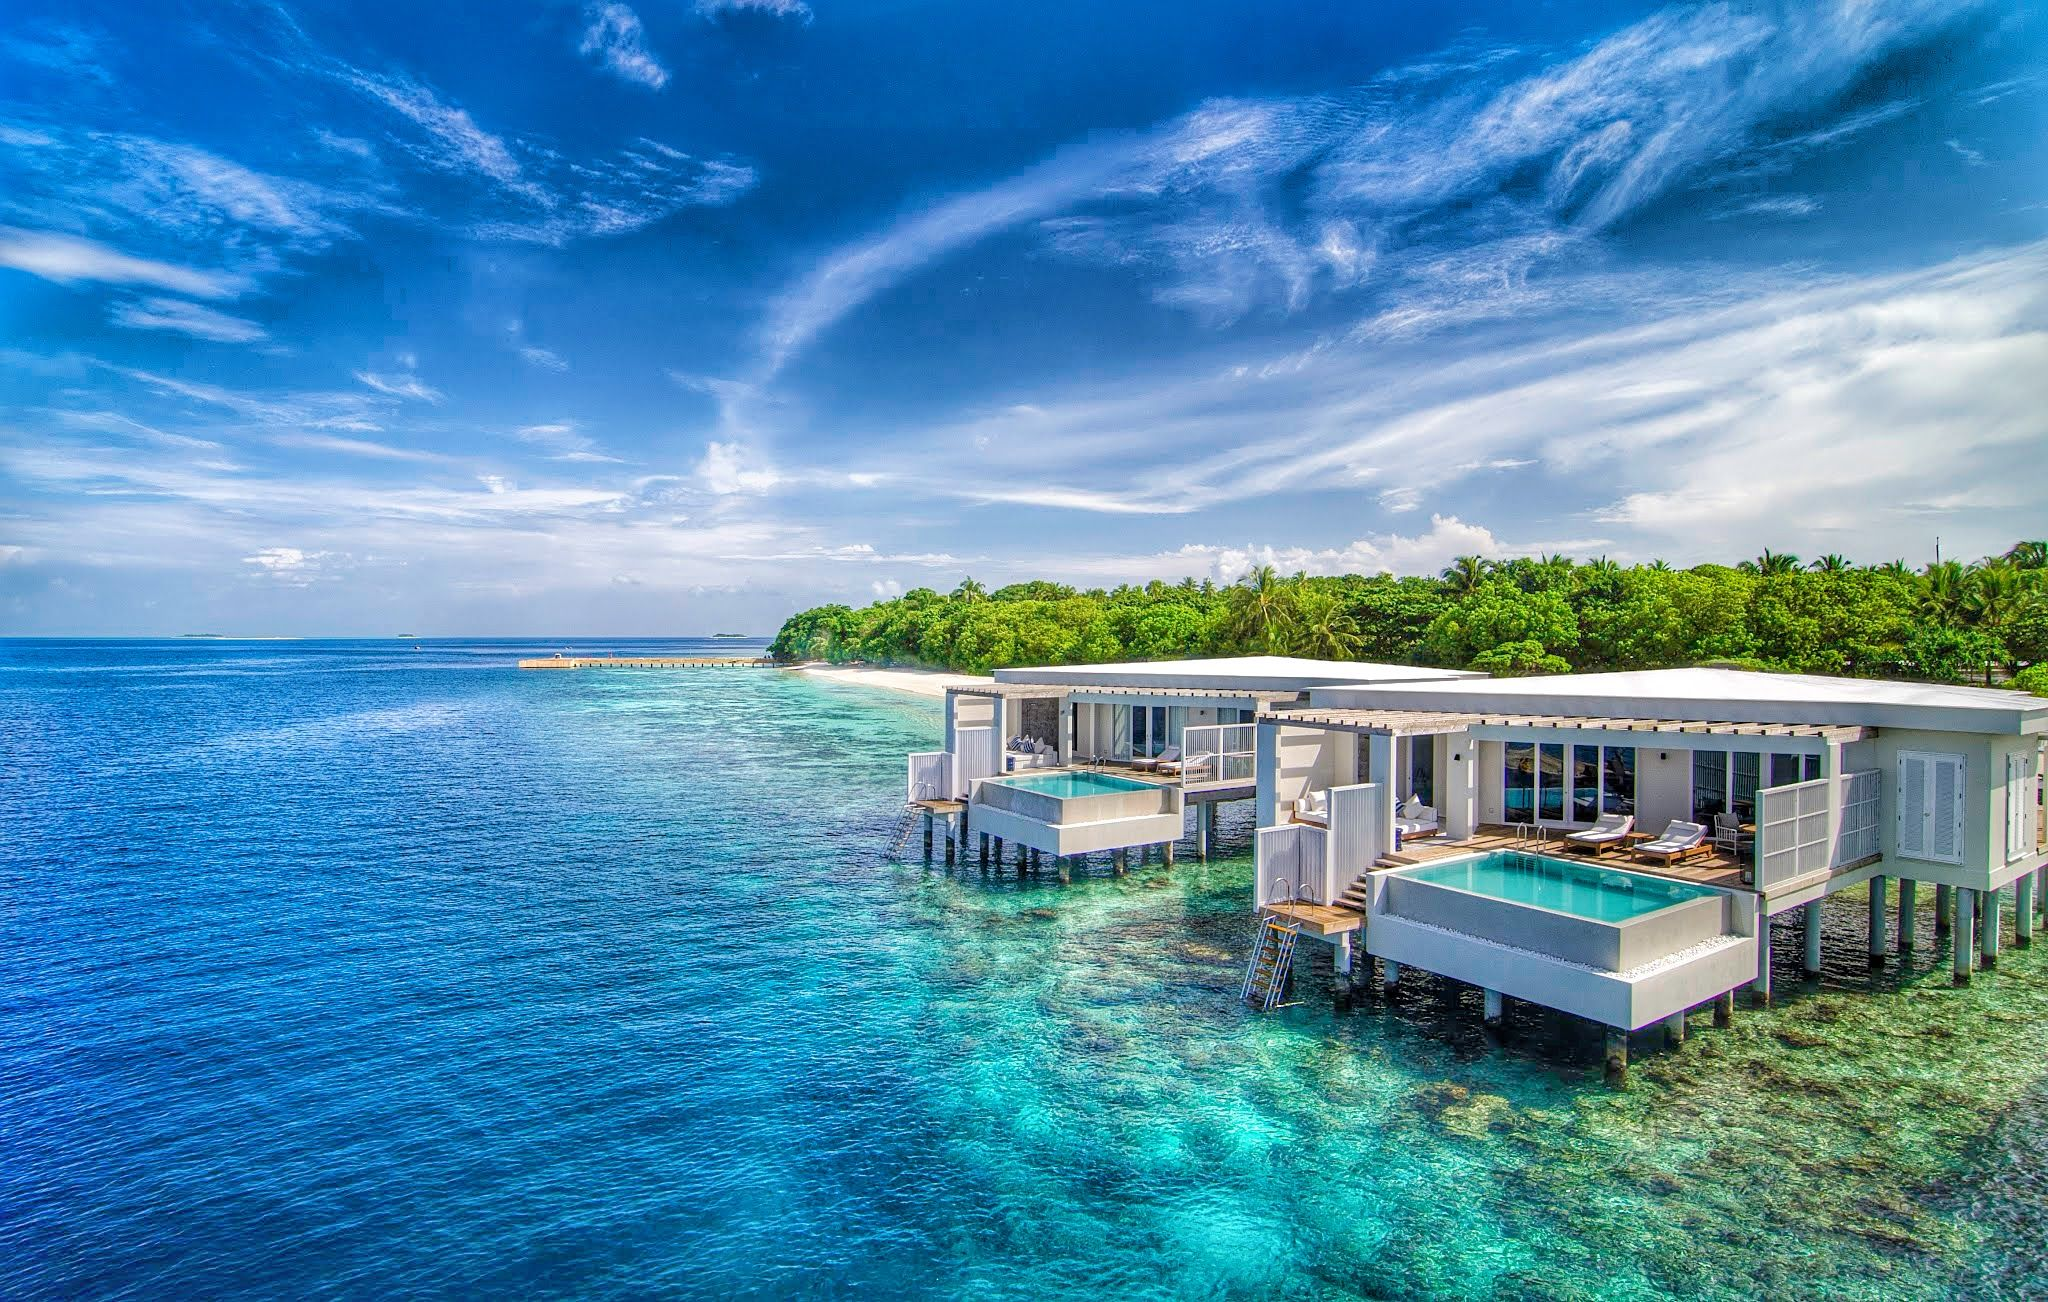 Located in the UNESCO World Biosphere Reserve of Baa Atoll, one of the 26 natural atolls in the Indian Ocean, Amilla Luxury Resort in the Maldives is offering you a choice of island homes that hover over crystal clear waters